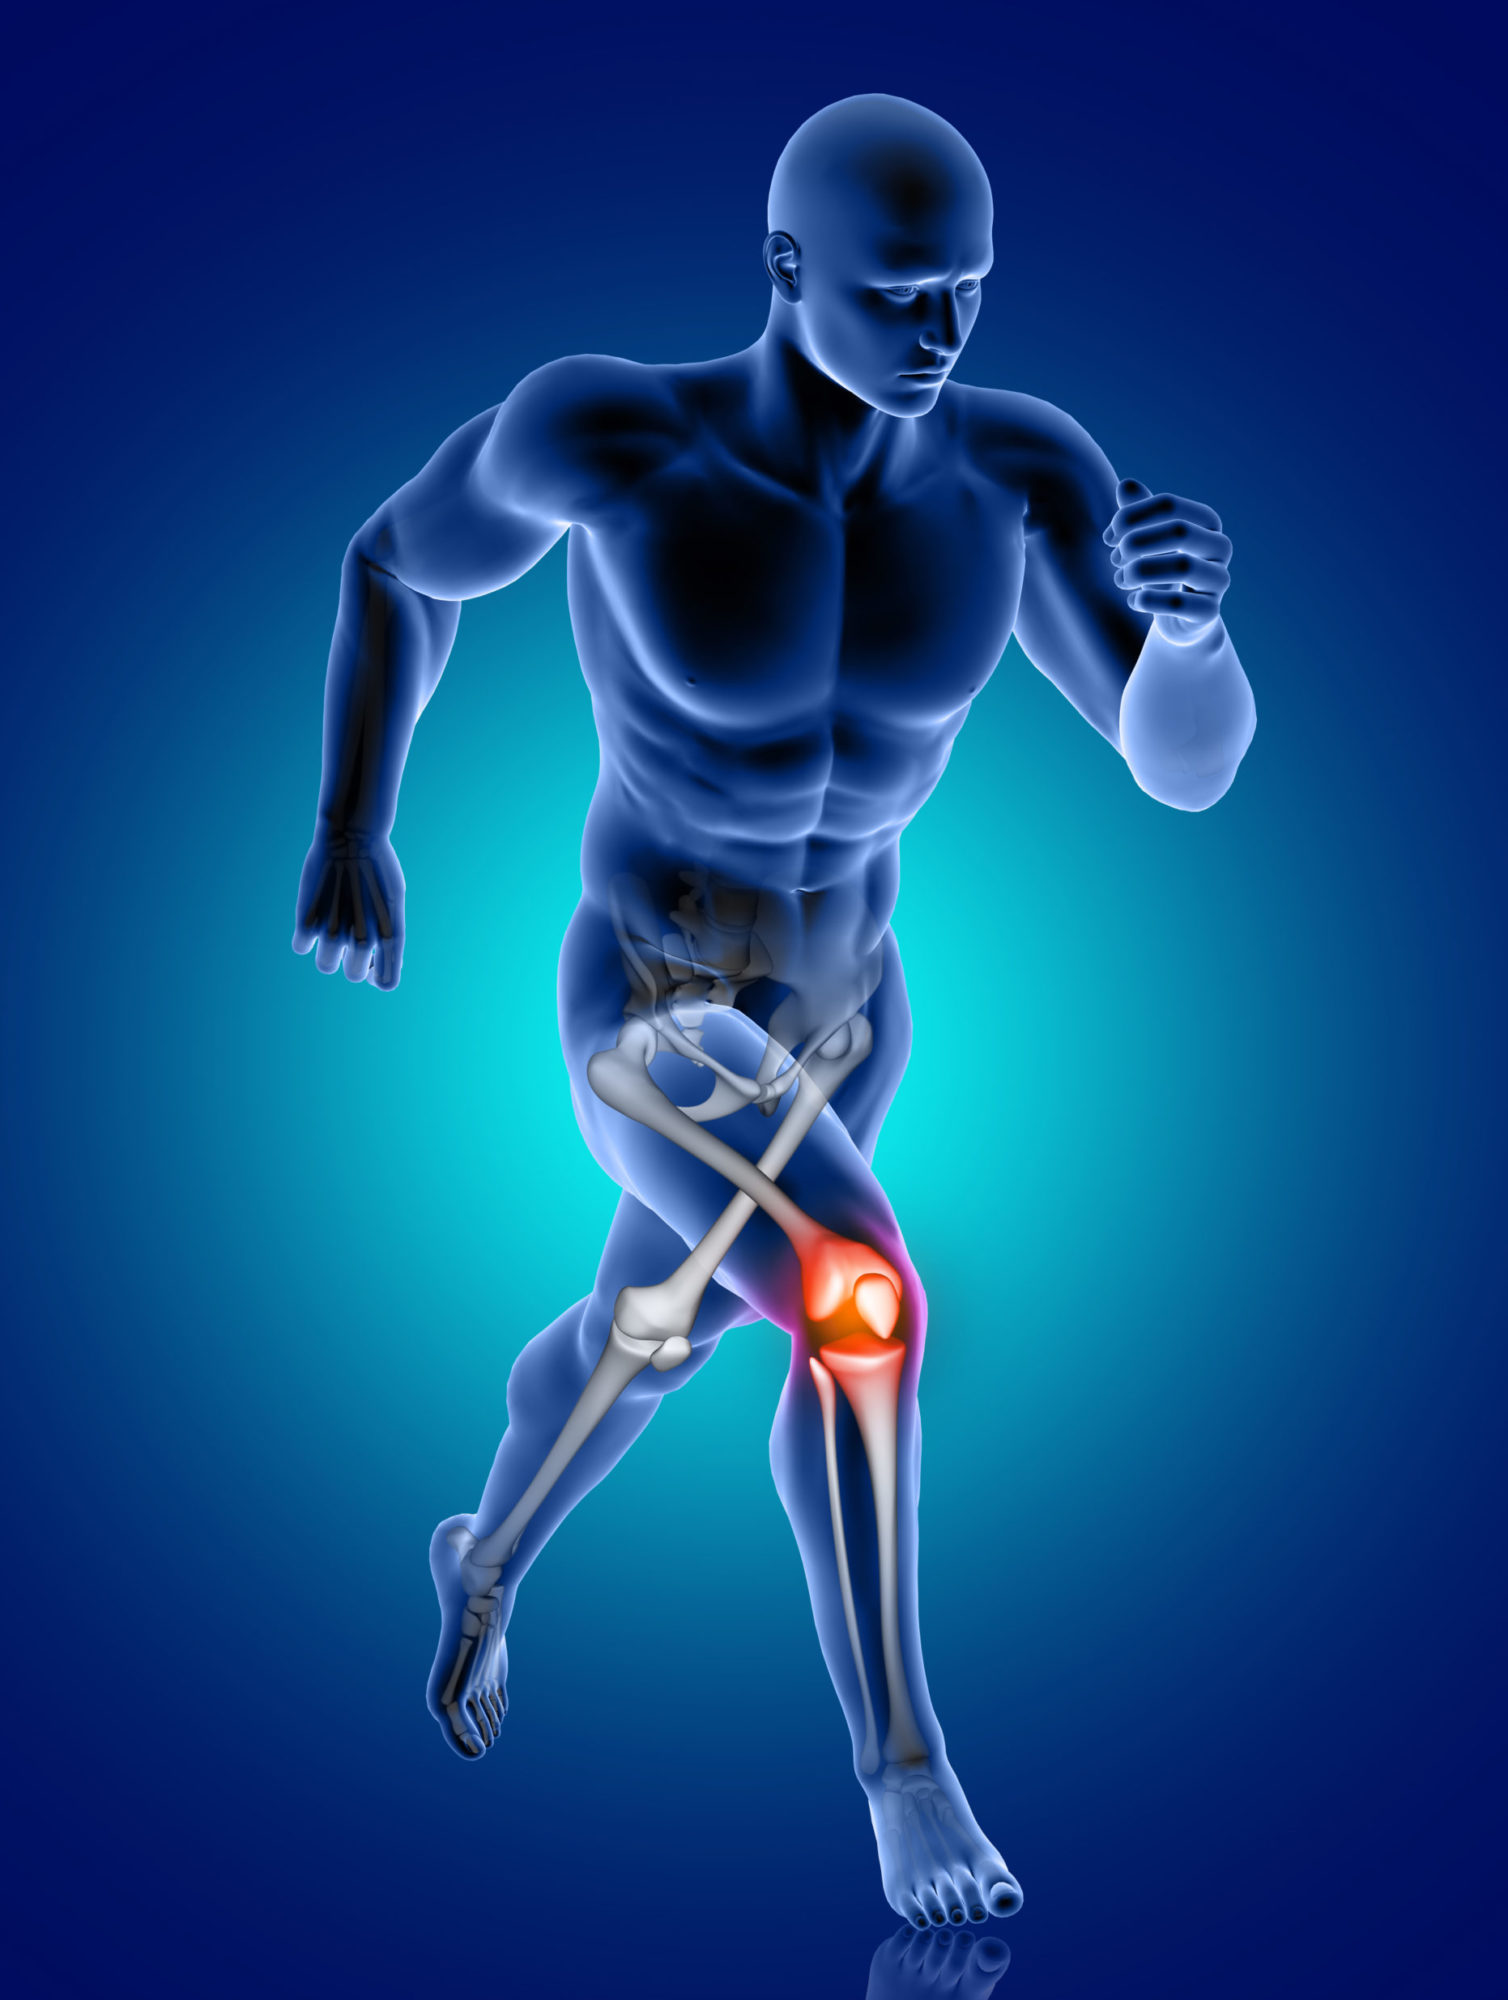 3D render of a male medical figure running with knee bone highlighted